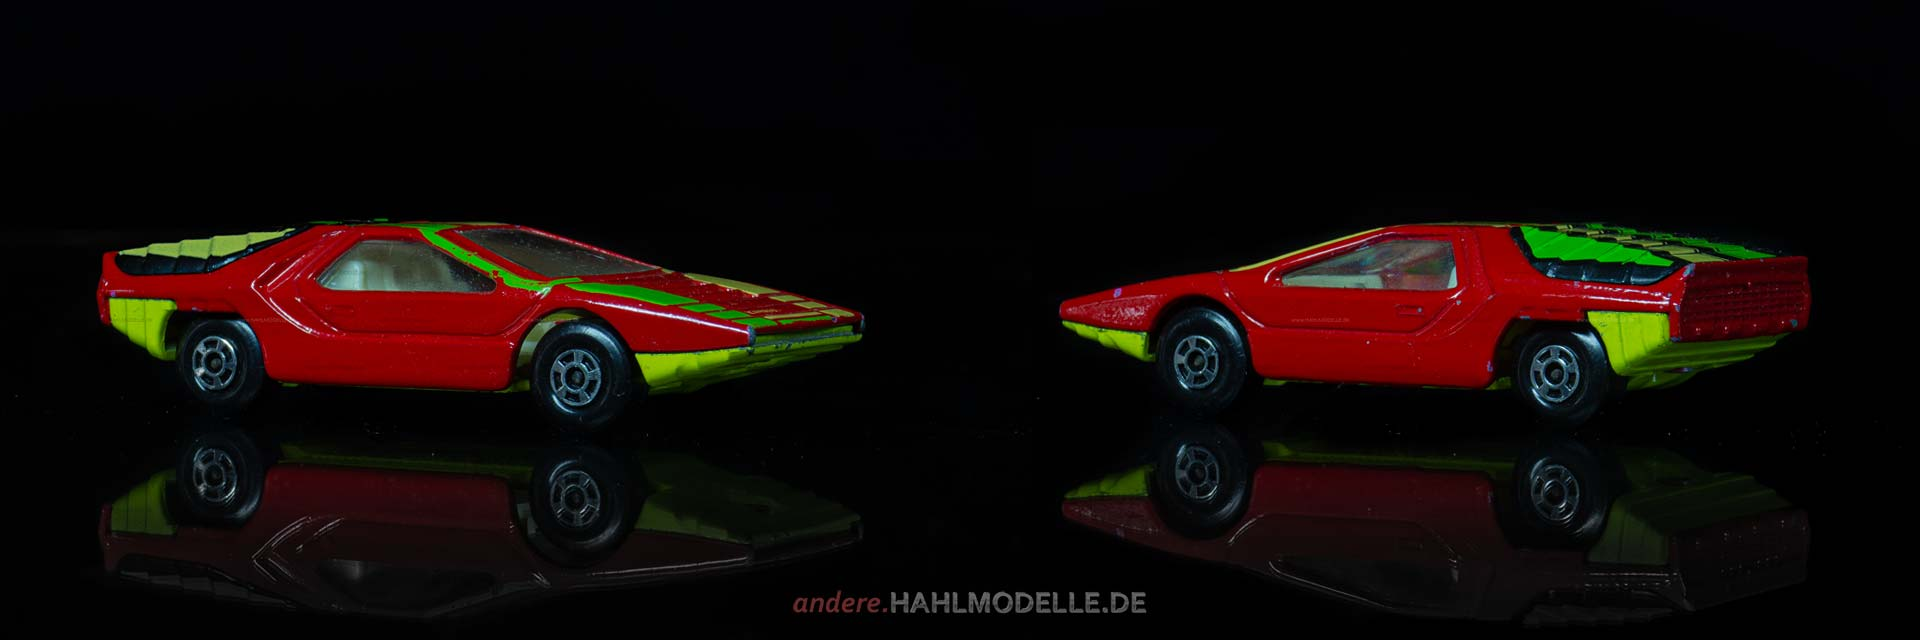 "Alfa Romeo Carabo | Sportwagen | Lesney Products & Co. Ltd. | Matchbox Superfast Streakers ""Alfa Carabo"" 